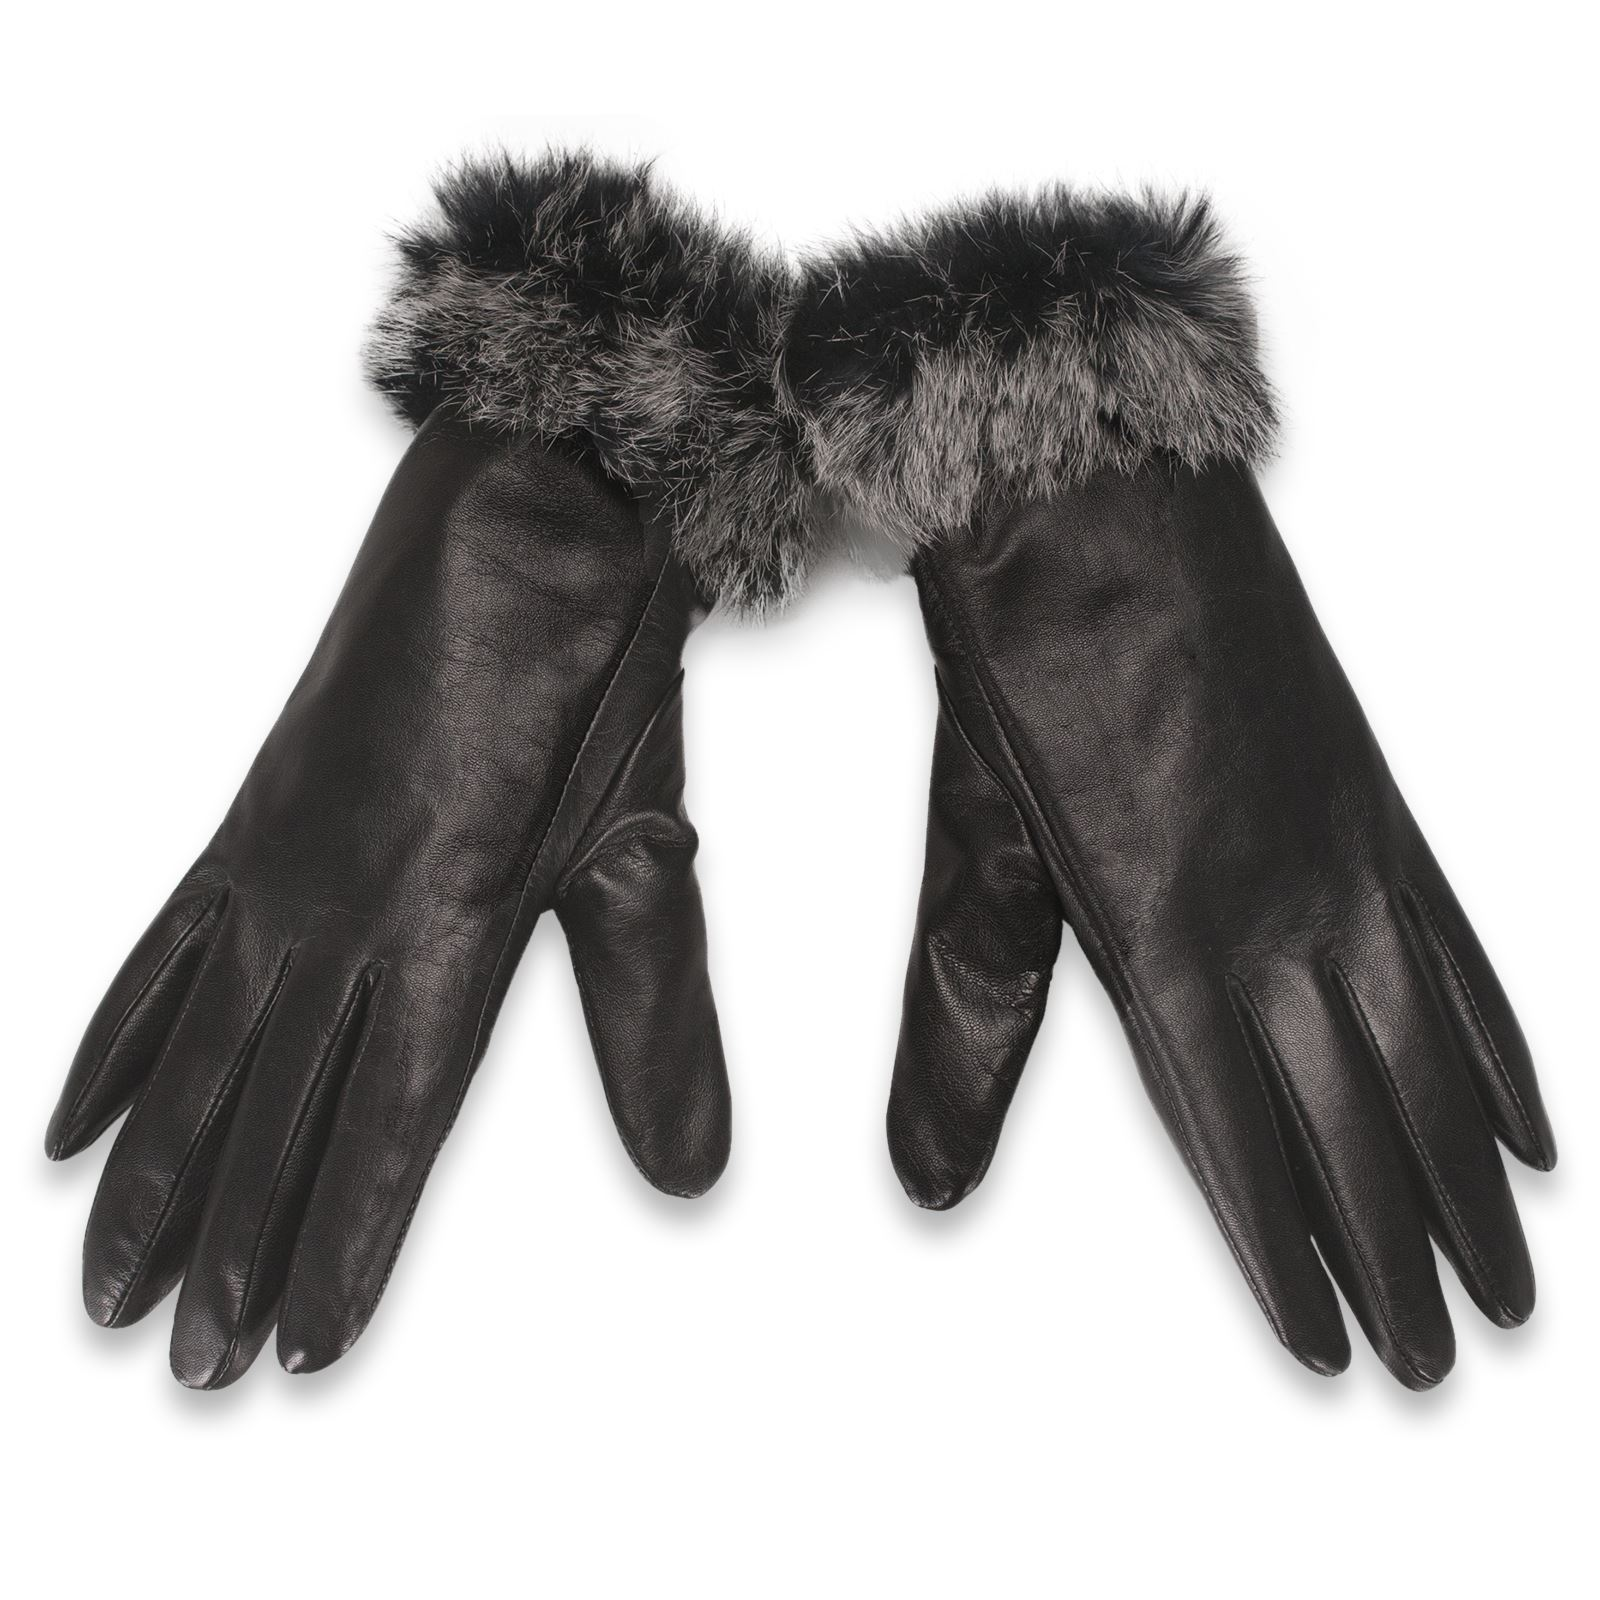 Ladies leather gloves wool lined - Beautiful Ladies Soft Leather Gloves From Quivano S Premium Black Label Range